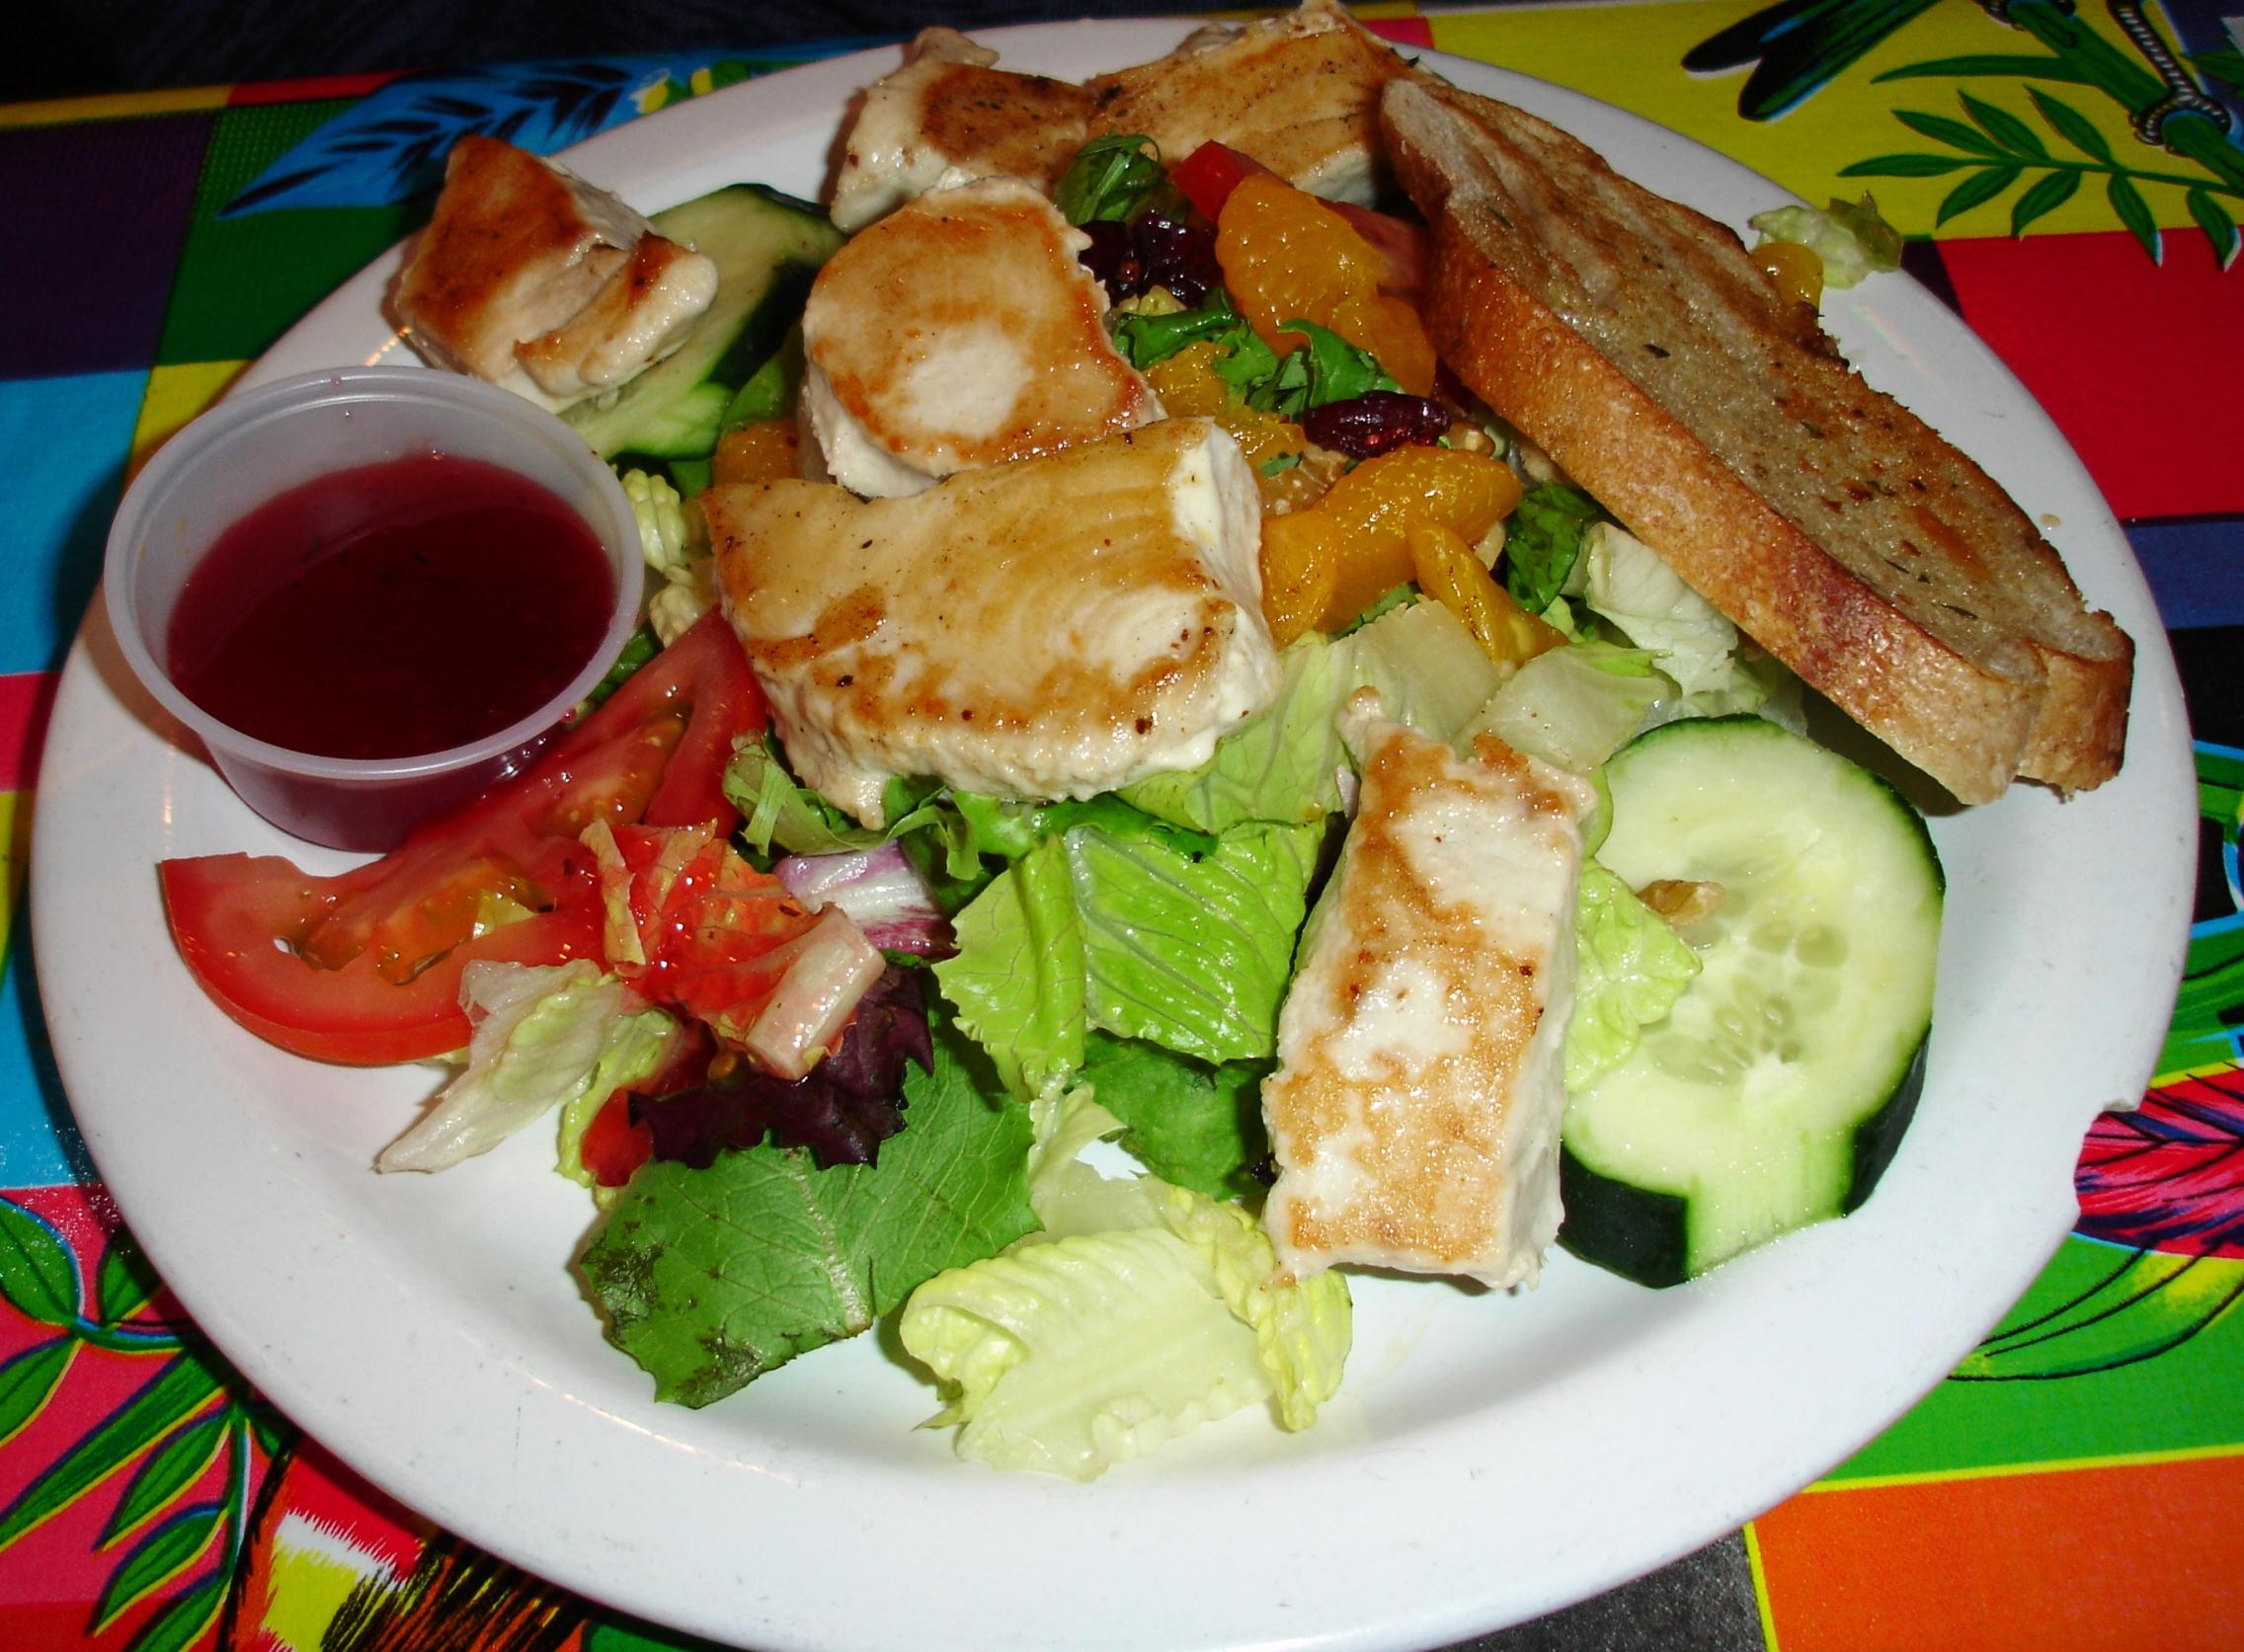 We ordered a salad topped with grilled ling cod but received one topped with grilled albacore, which was fine. After years of eating tuna either raw or seared and raw in the center, it is fascinating to taste it cooked all the way through as is done all over the Oregon coast. Yes, there is some of that familiar, meaty Chicken-of-the-Sea texture, but the juiciness and clean flavors are a revelation.